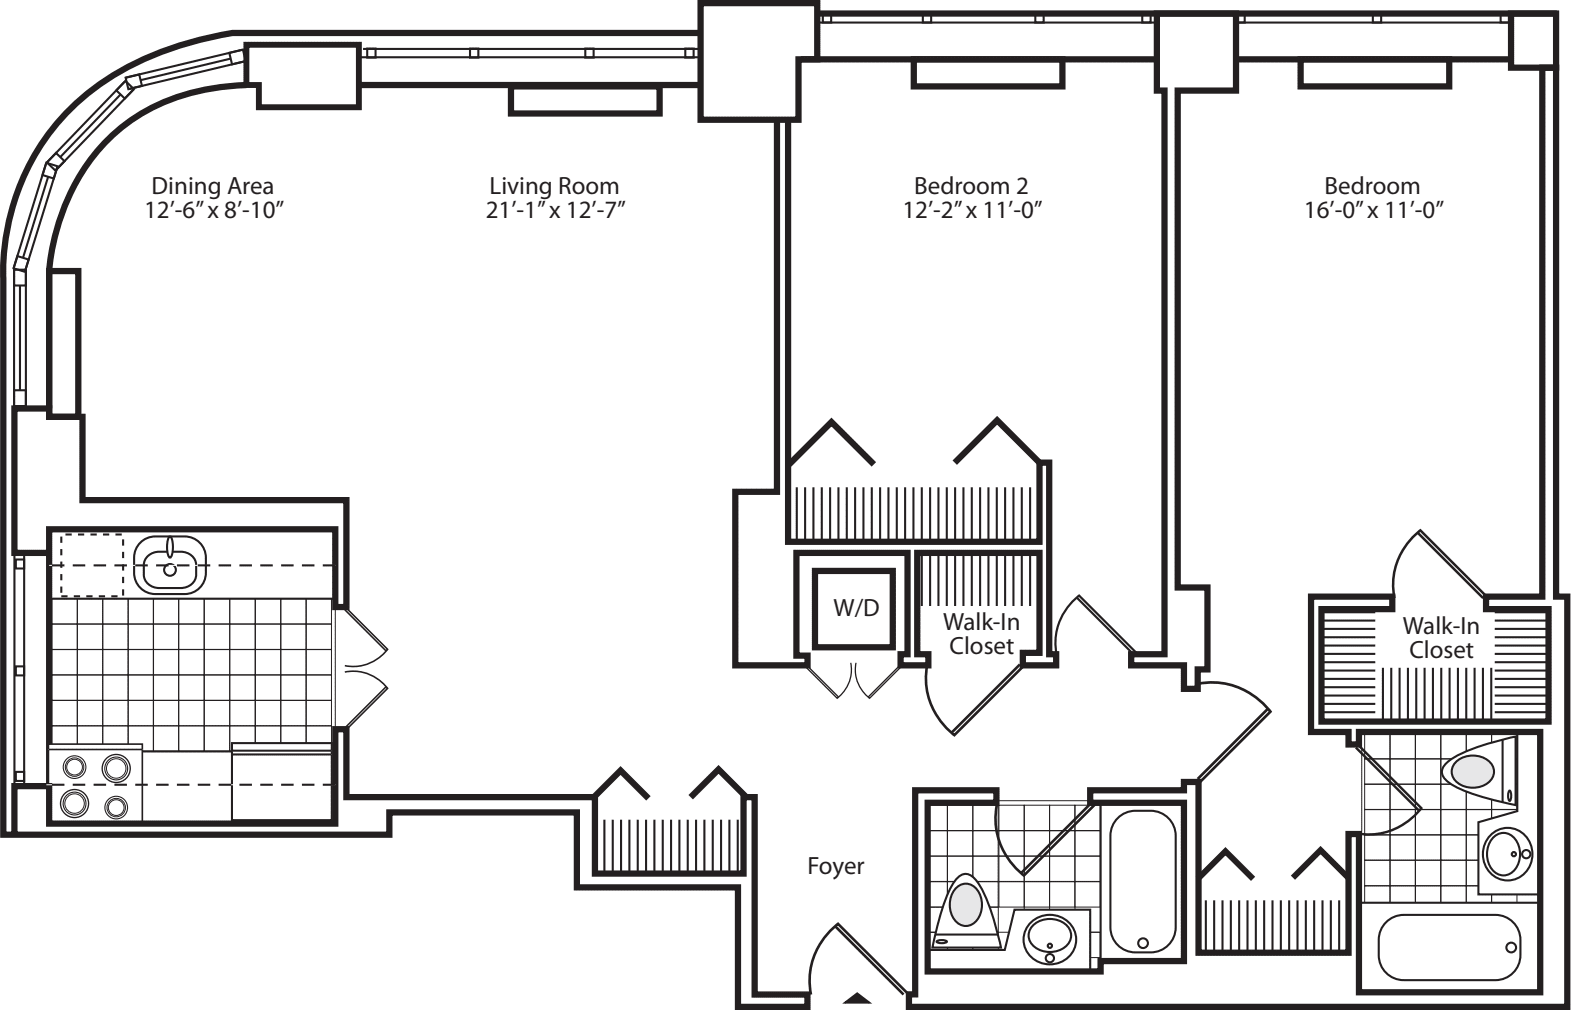 Penthouse 1C and 2C